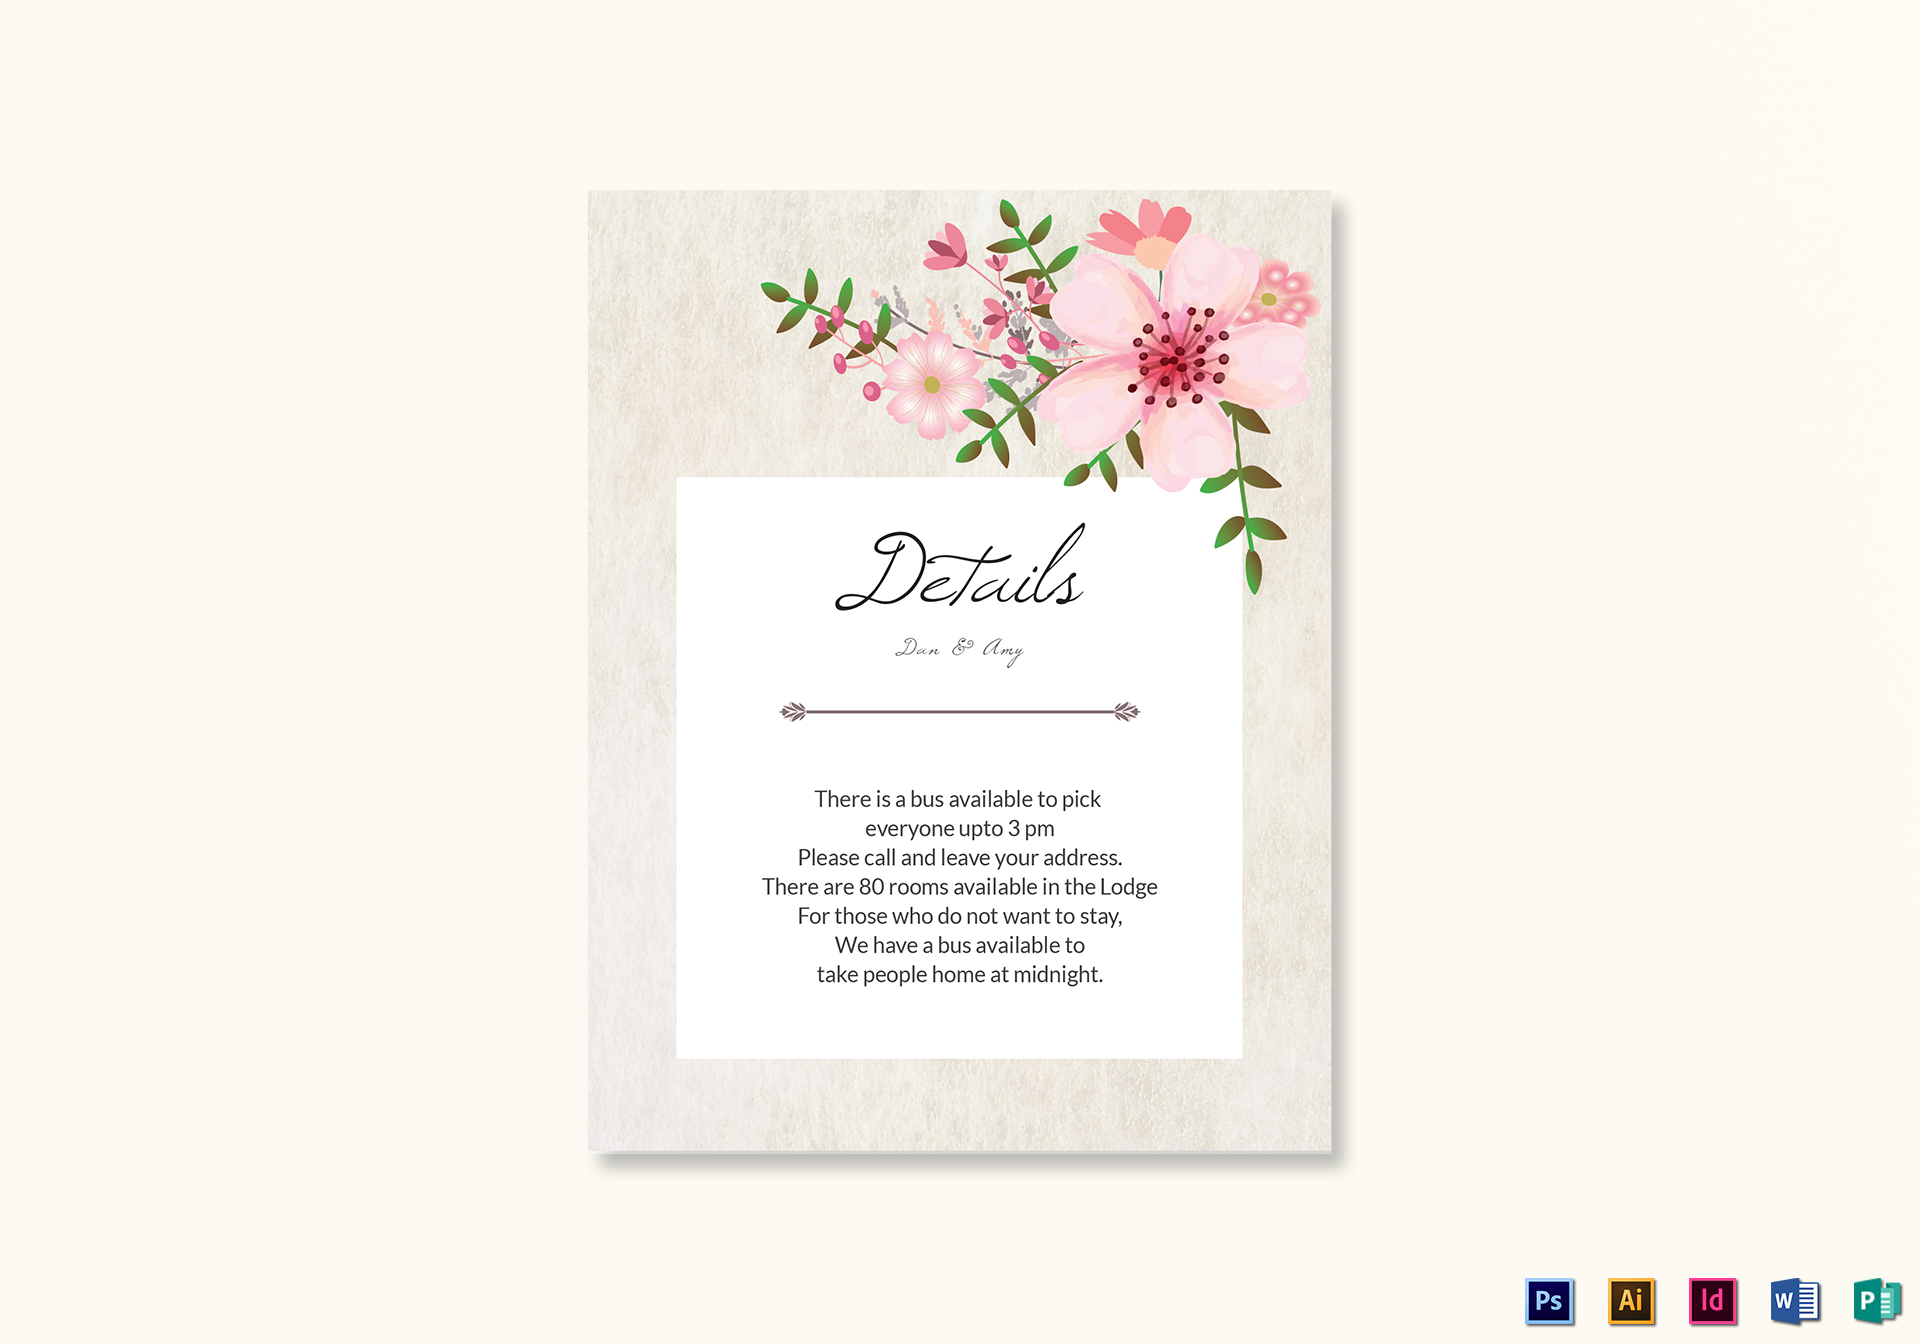 pink floral wedding details card design template in psd word